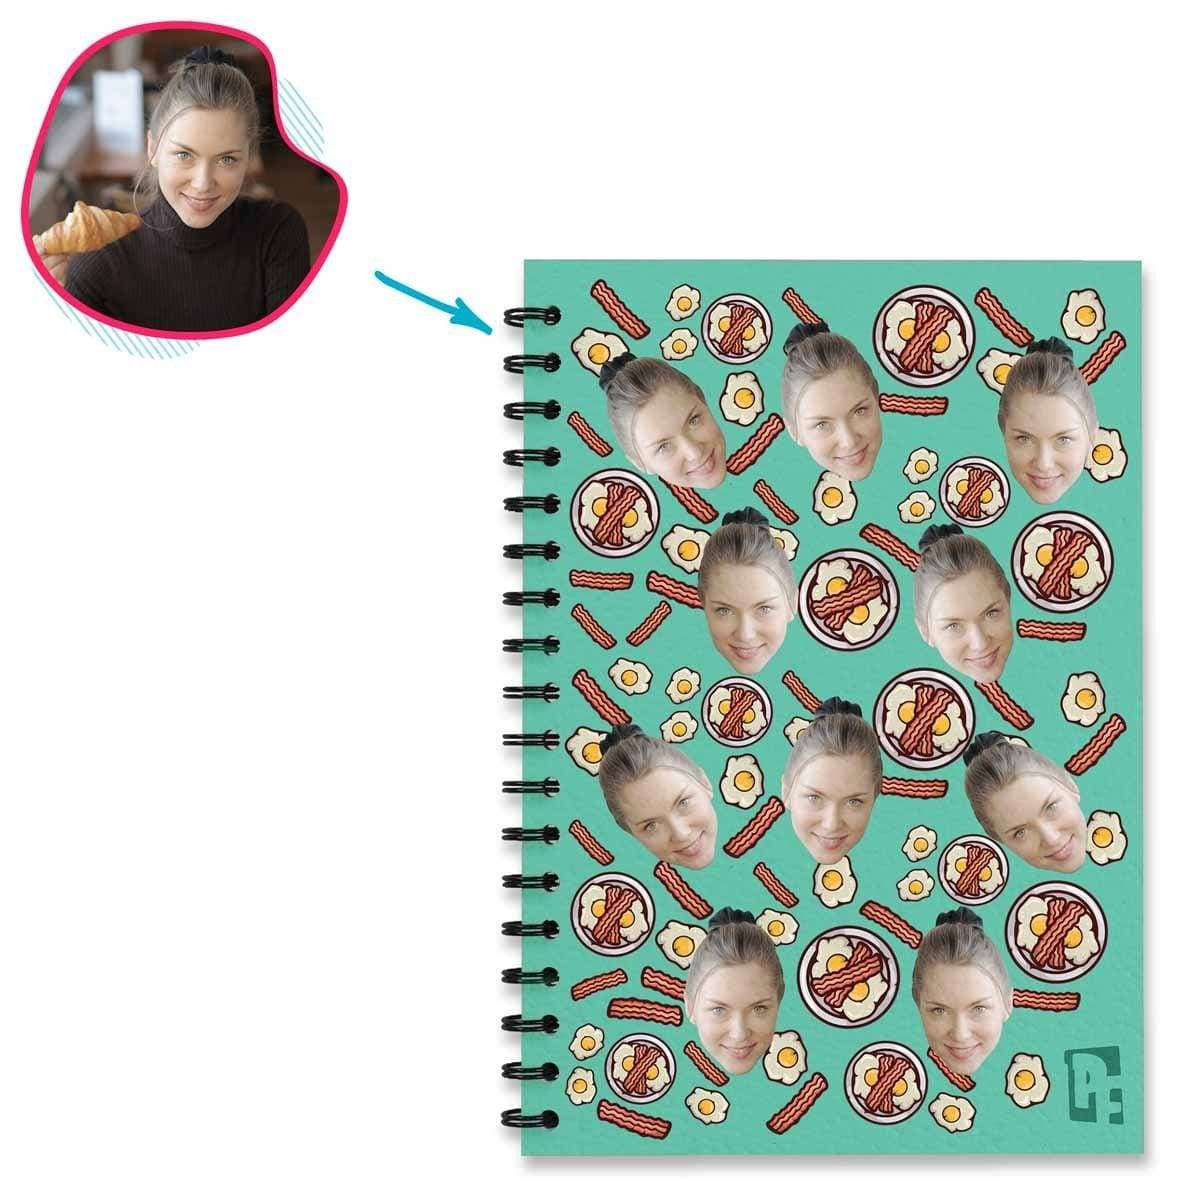 mint Bacon and Eggs Notebook personalized with photo of face printed on them